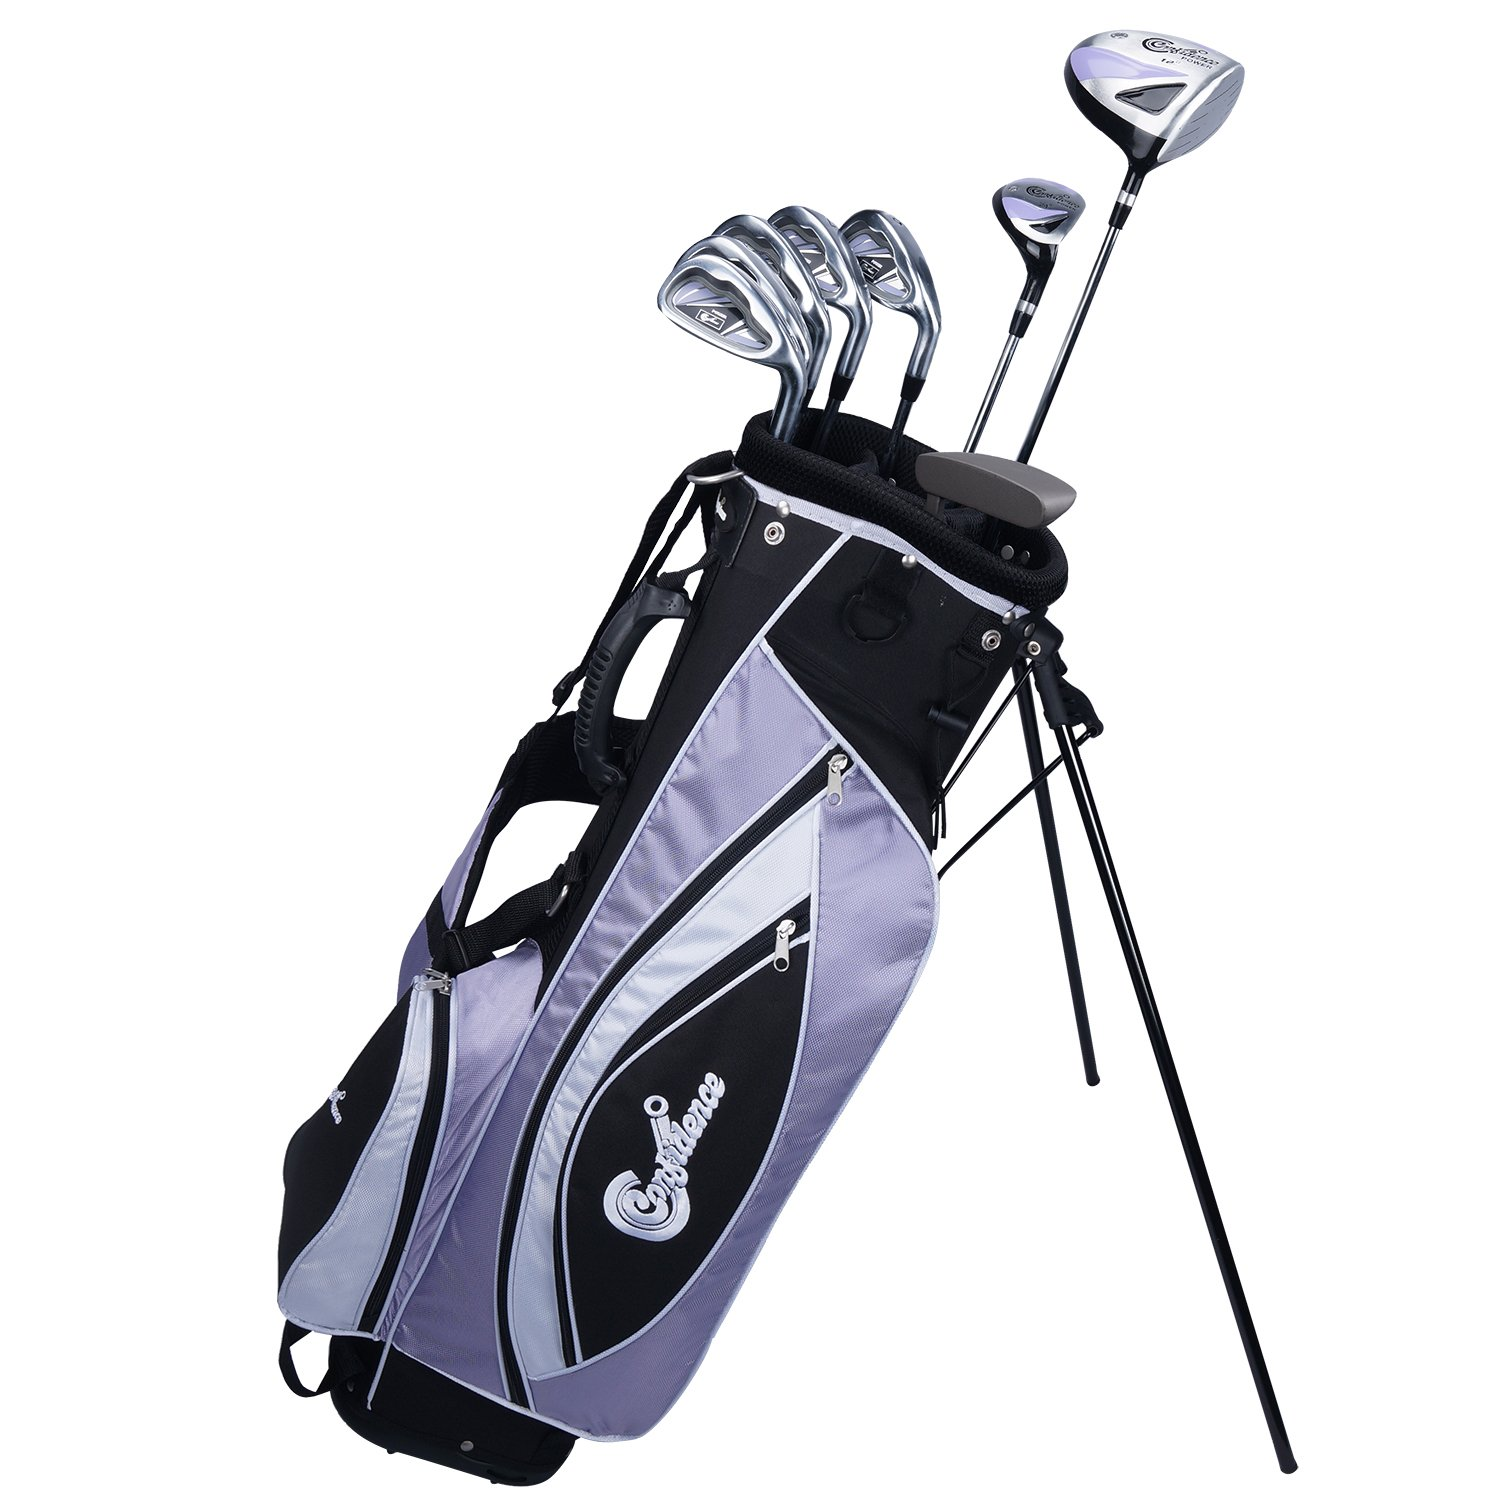 Confidence Golf LADY POWER Hybrid Club Set & Stand Bag by Confidence